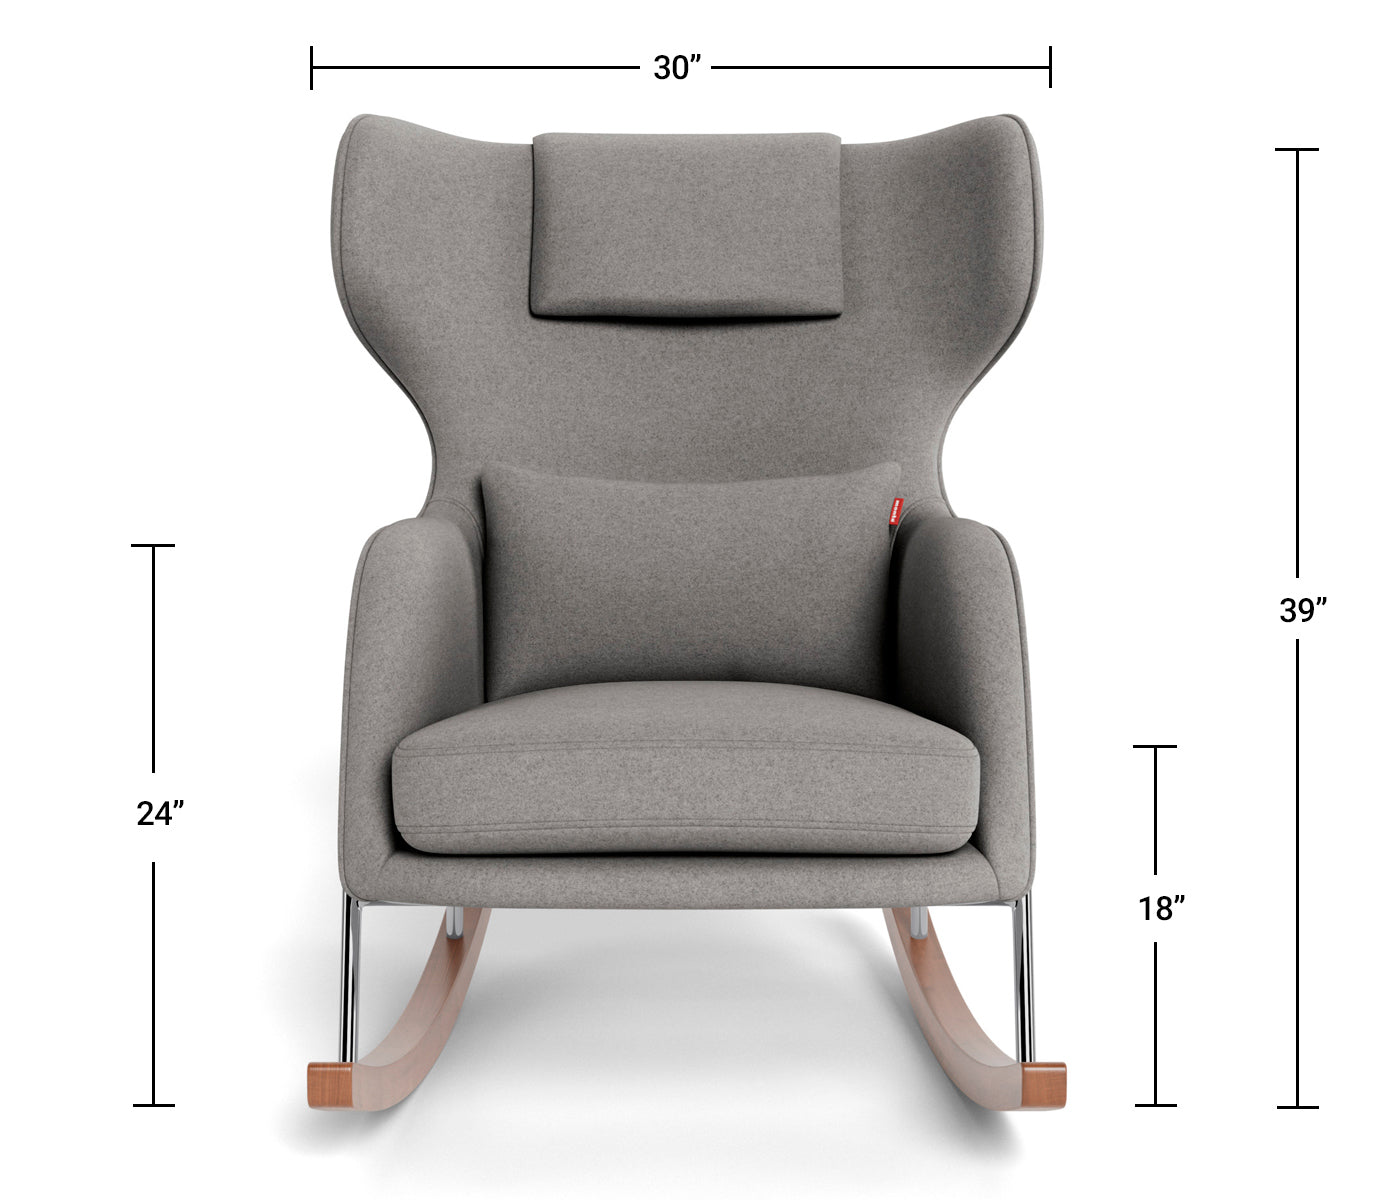 Modern Nursery Rocking Chair - Grand Jackson Rocker Dimensions Front View